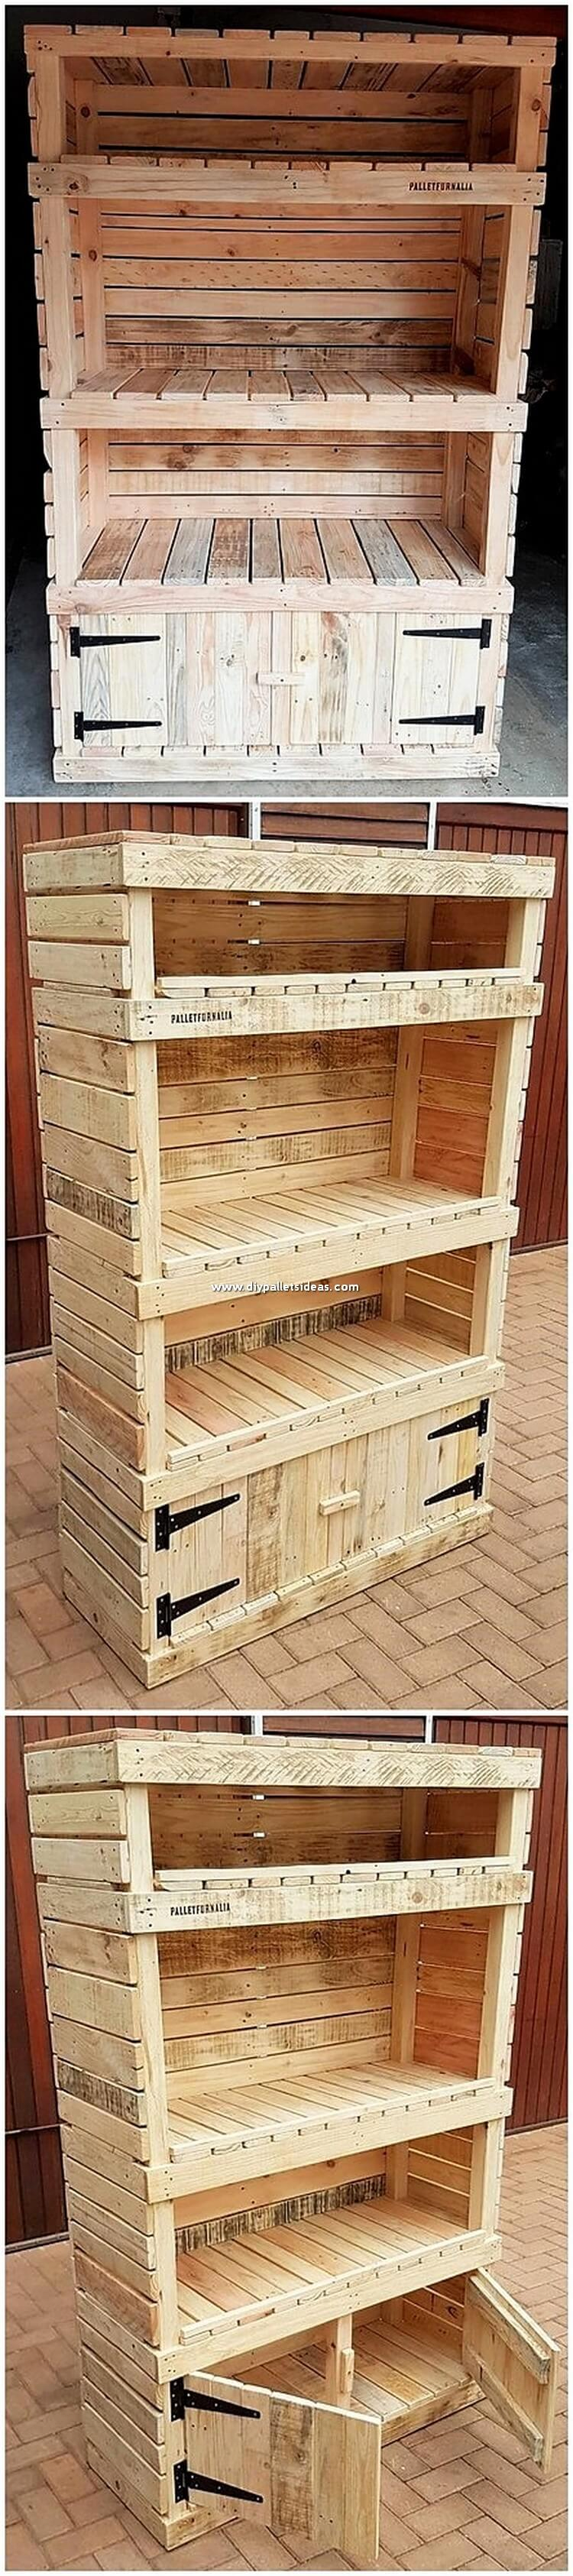 Pallet Shelving Cabinet or Cupboard